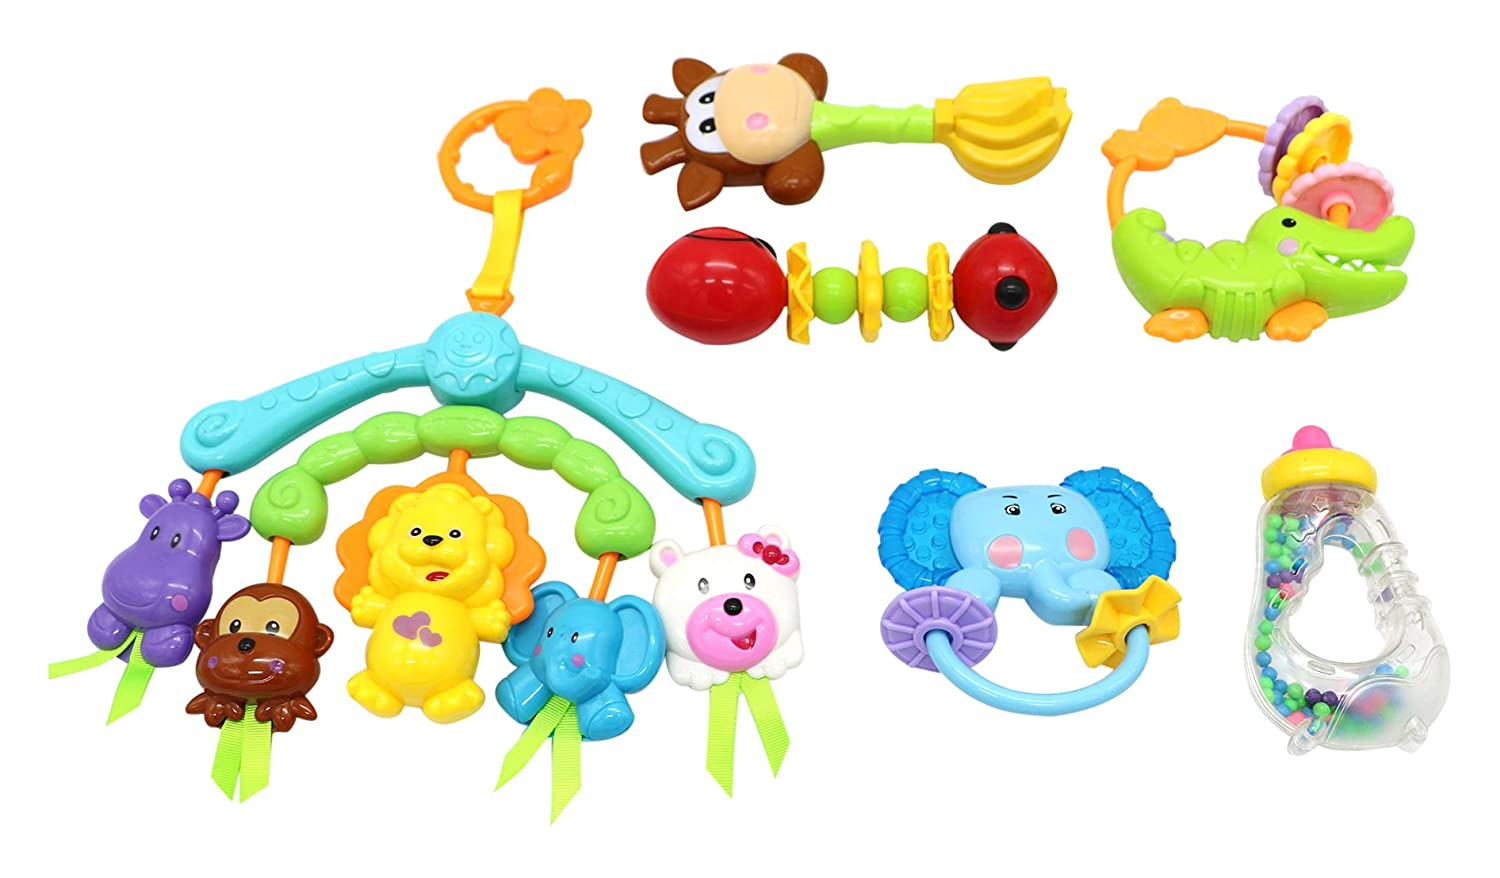 Little Treasures A Wonderful Hanging Rattleおもちゃ動物Play Thatセットにより、Infants 6ヶ月、旧to have fun while they rest   B01DWEGLNA